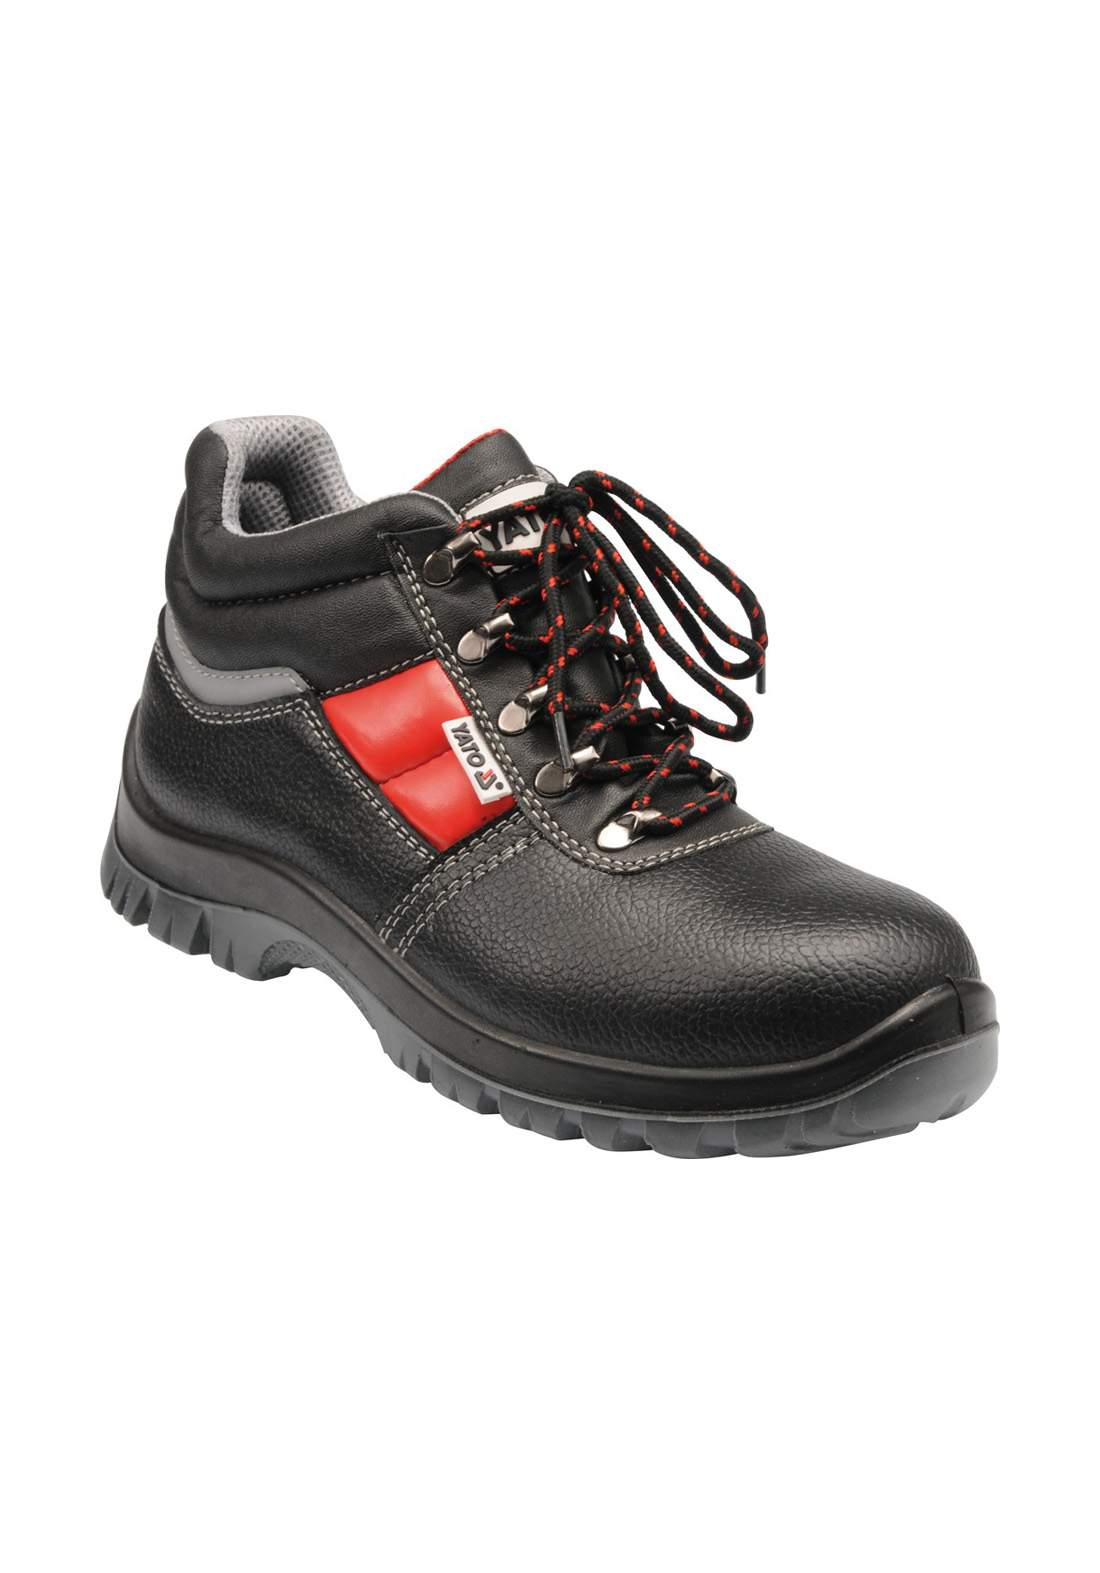 Yato Middle-Cut Safety Shoes حذاء امان